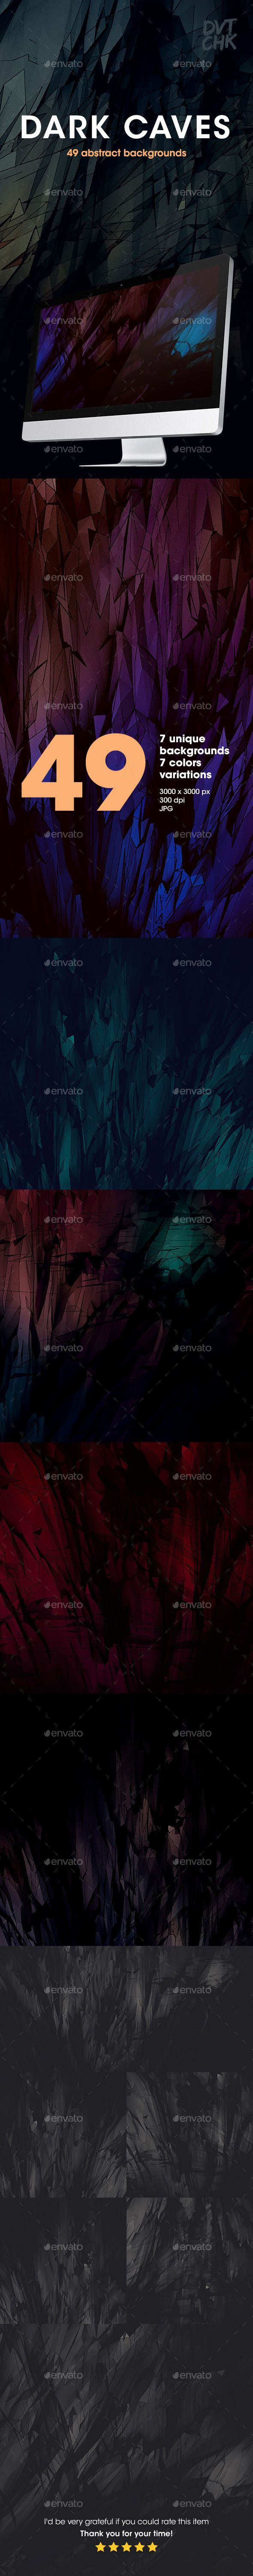 Dark Abstract Backgrounds. Download here: http://graphicriver.net/item/dark-abstract-backgrounds/12324378?ref=ksioks